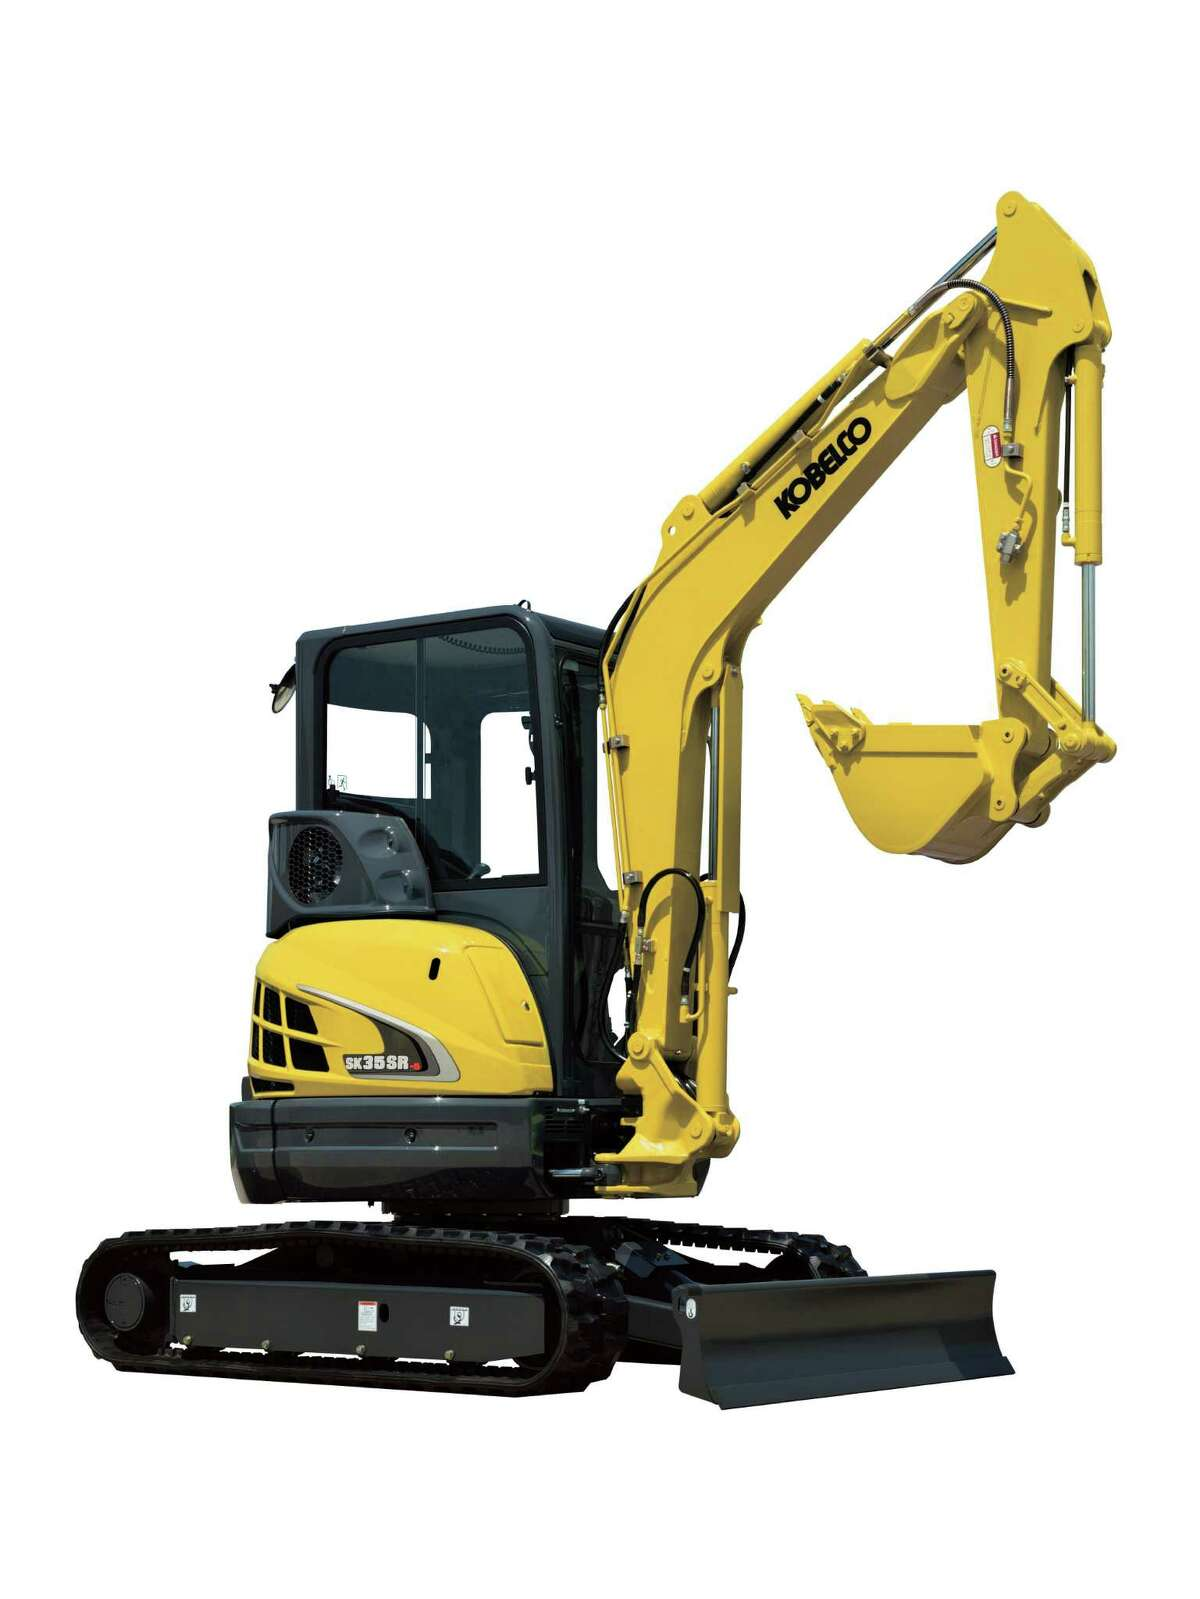 The Kobelco SK35SR model weighs 12,295 pounds and has a short radius. Its compact size makes it agile on the jobsite.